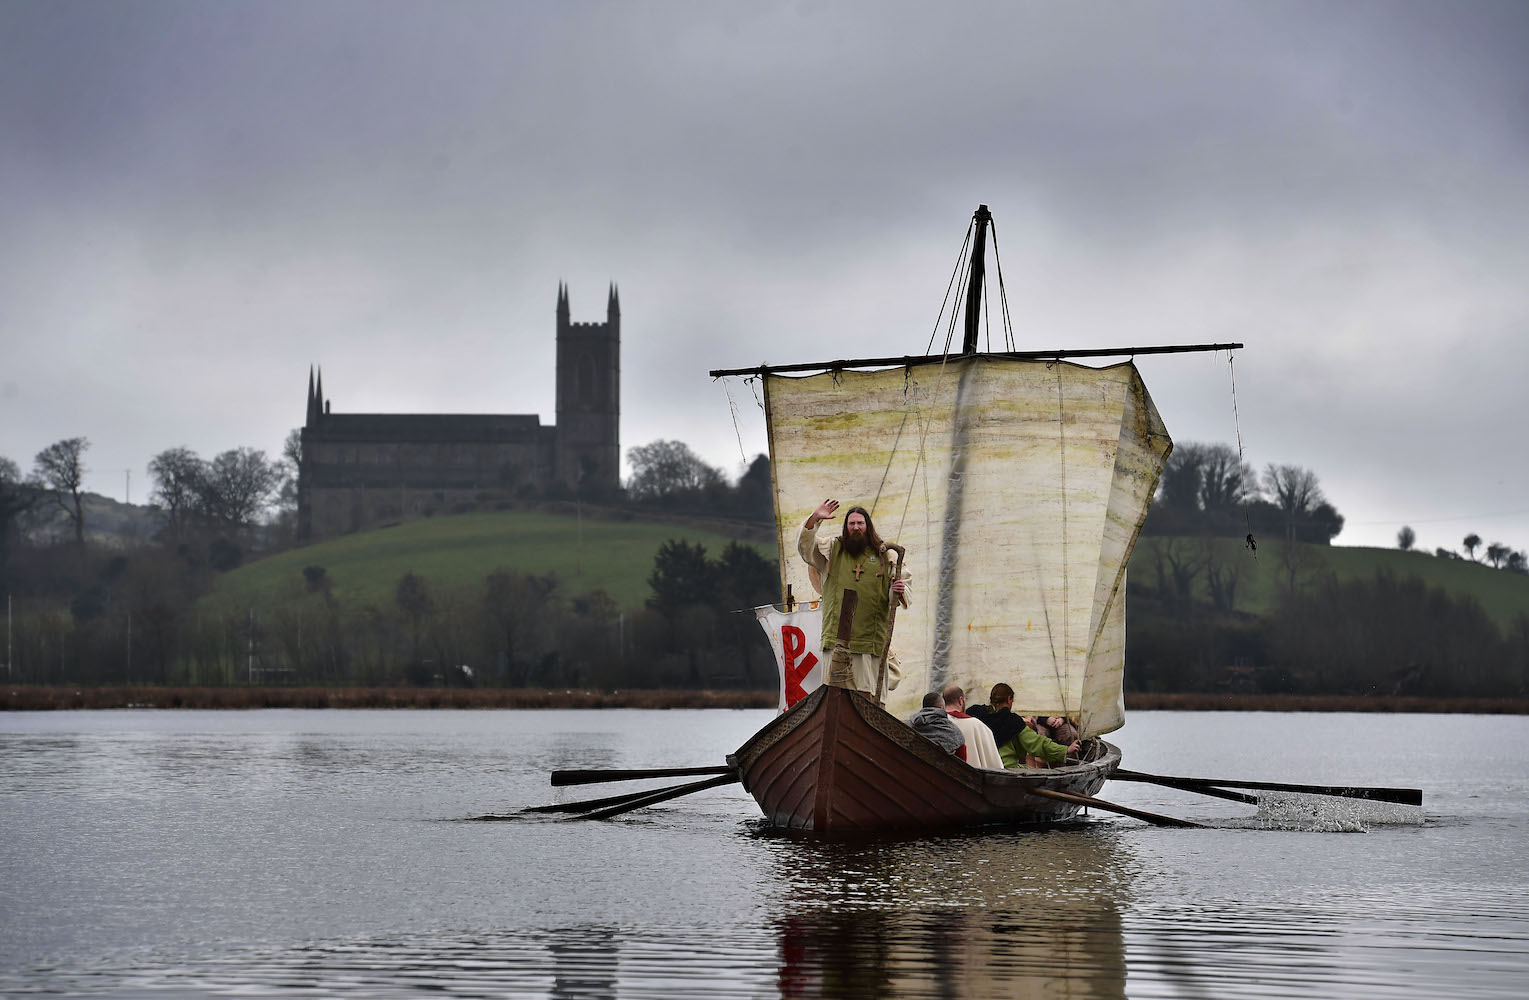 DOWNPATRICK, NORTHERN IRELAND - MARCH 11: Marty Burns who plays Saint Patrick is brought to shore past Downpatrick cathedral as the re-enactment of Saint Patrick's first landing in Ireland takes place at Inch Abbey on March 11, 2018 in Downpatrick, Northern Ireland. The Irish annals for the fifth century date Patrick's arrival in Ireland in the year 432. The patron saint of Ireland's remains are believed to be buried at Down Cathedral. Saint Patrick's Day is celebrated on the 17th of March. (Photo by Charles McQuillan/Getty Images)